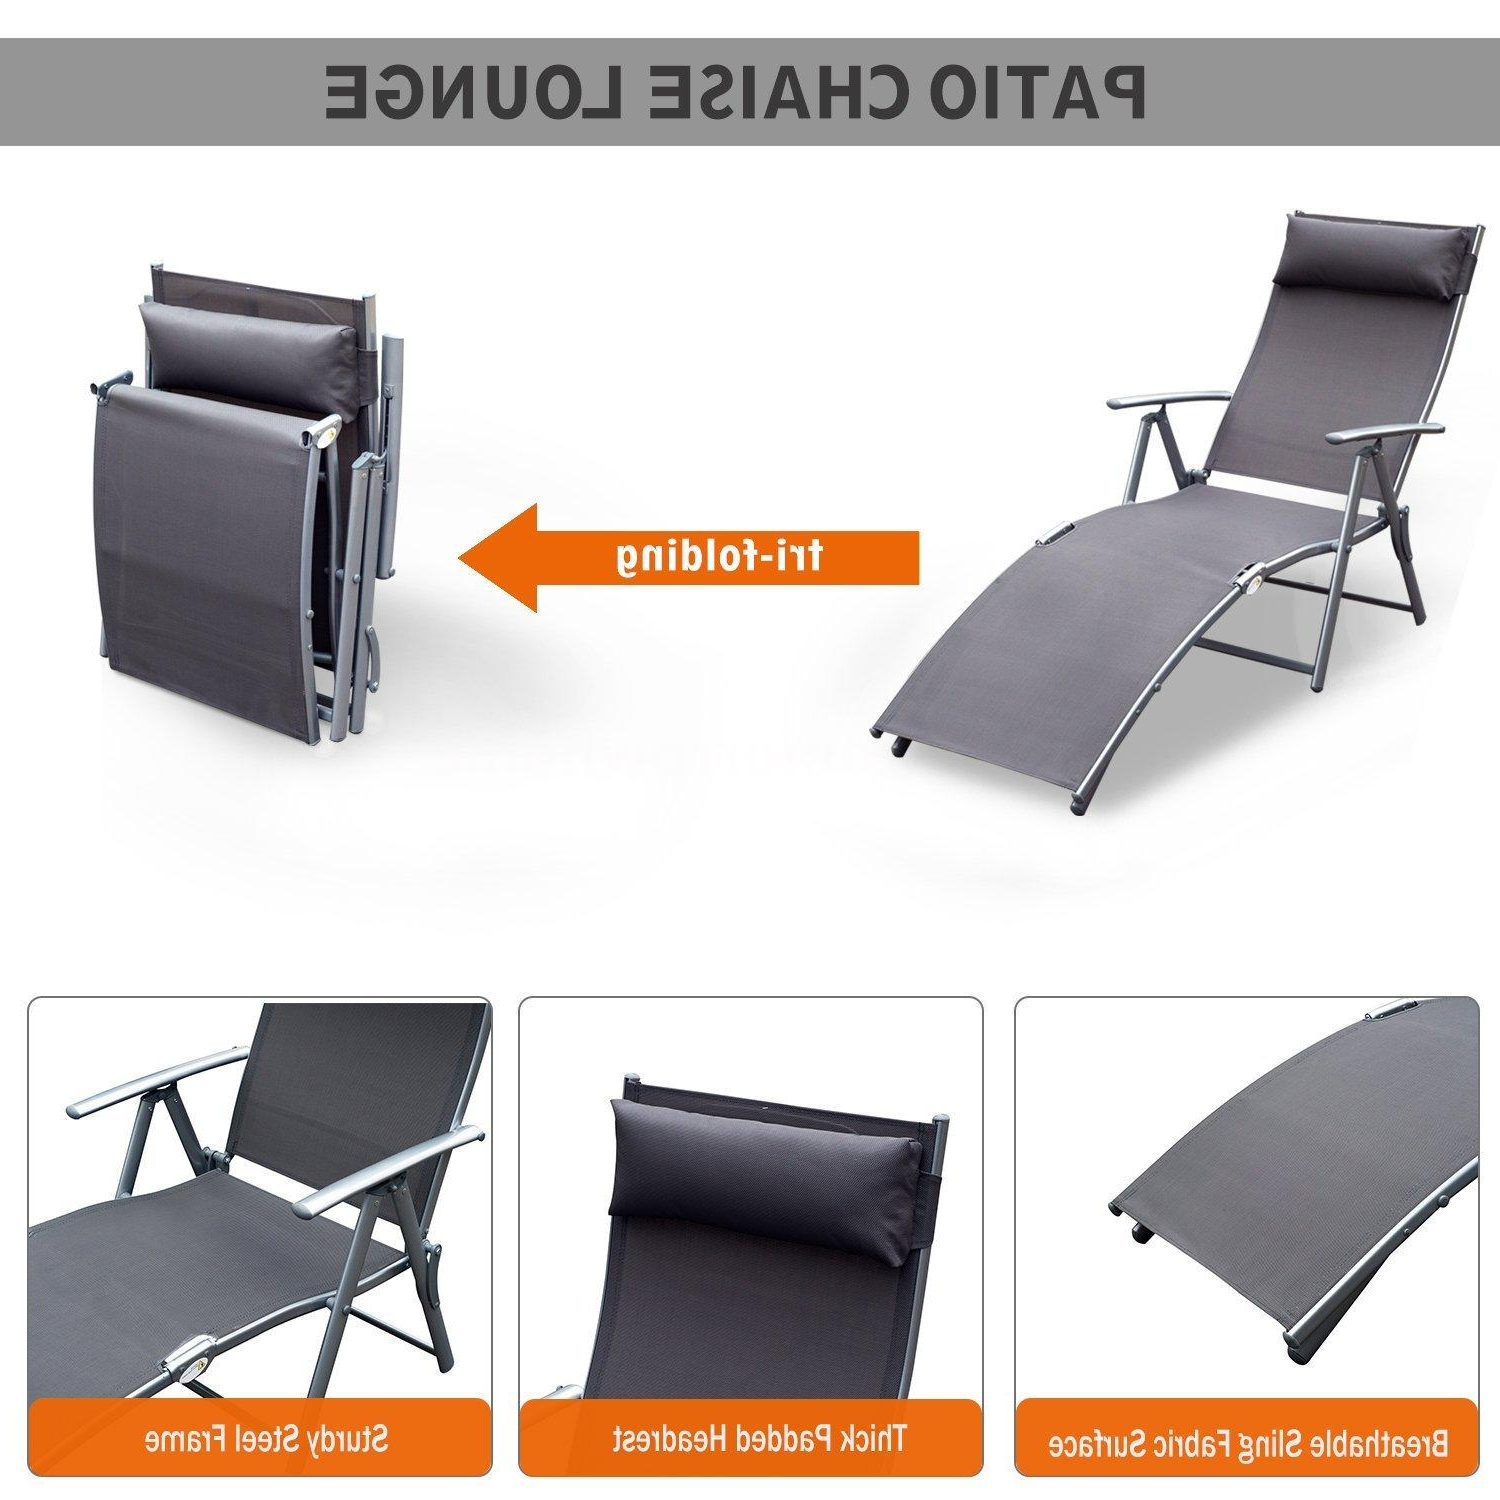 Adjustable Sling Fabric Patio Chaise Lounges Regarding 2020 Details About Steel Sling Fabric Outdoor Folding Chaise Lounge Chair Recliner – Grey K5c (View 15 of 25)